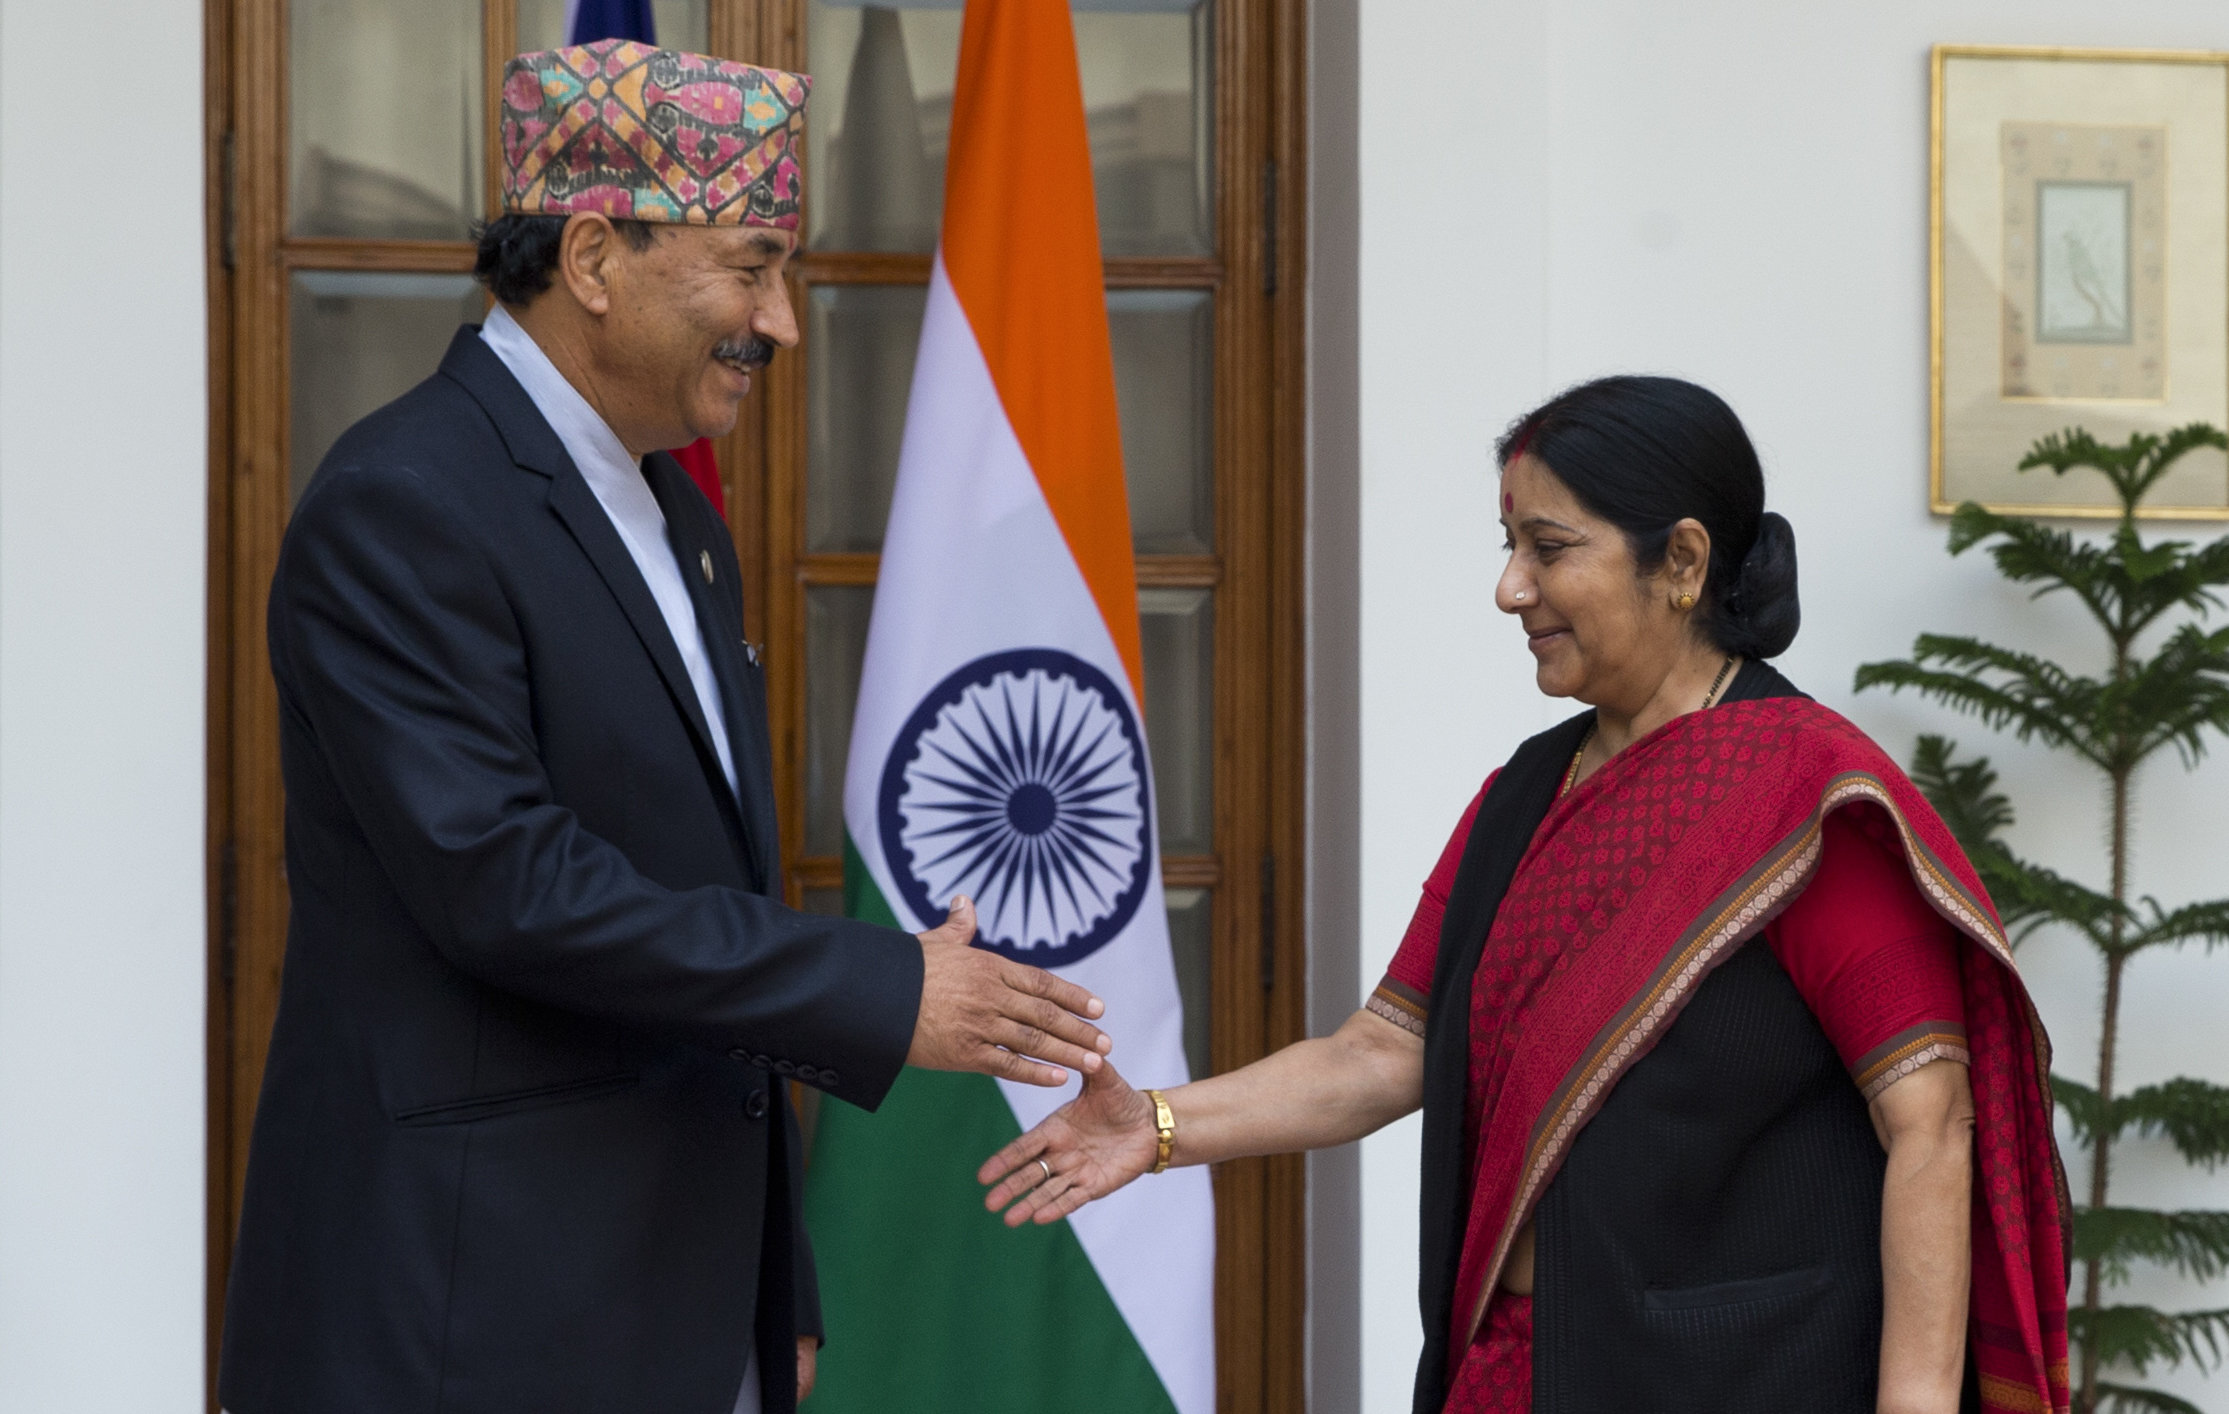 Nepal's Deputy Prime Minister and Foreign Minister Kamal Thapa, left, shakes hands with India's External Affairs Minister Sushma Swaraj before a meeting in New Delhi, India, on Sunday, Oct. 18, 2015. Photo: AP